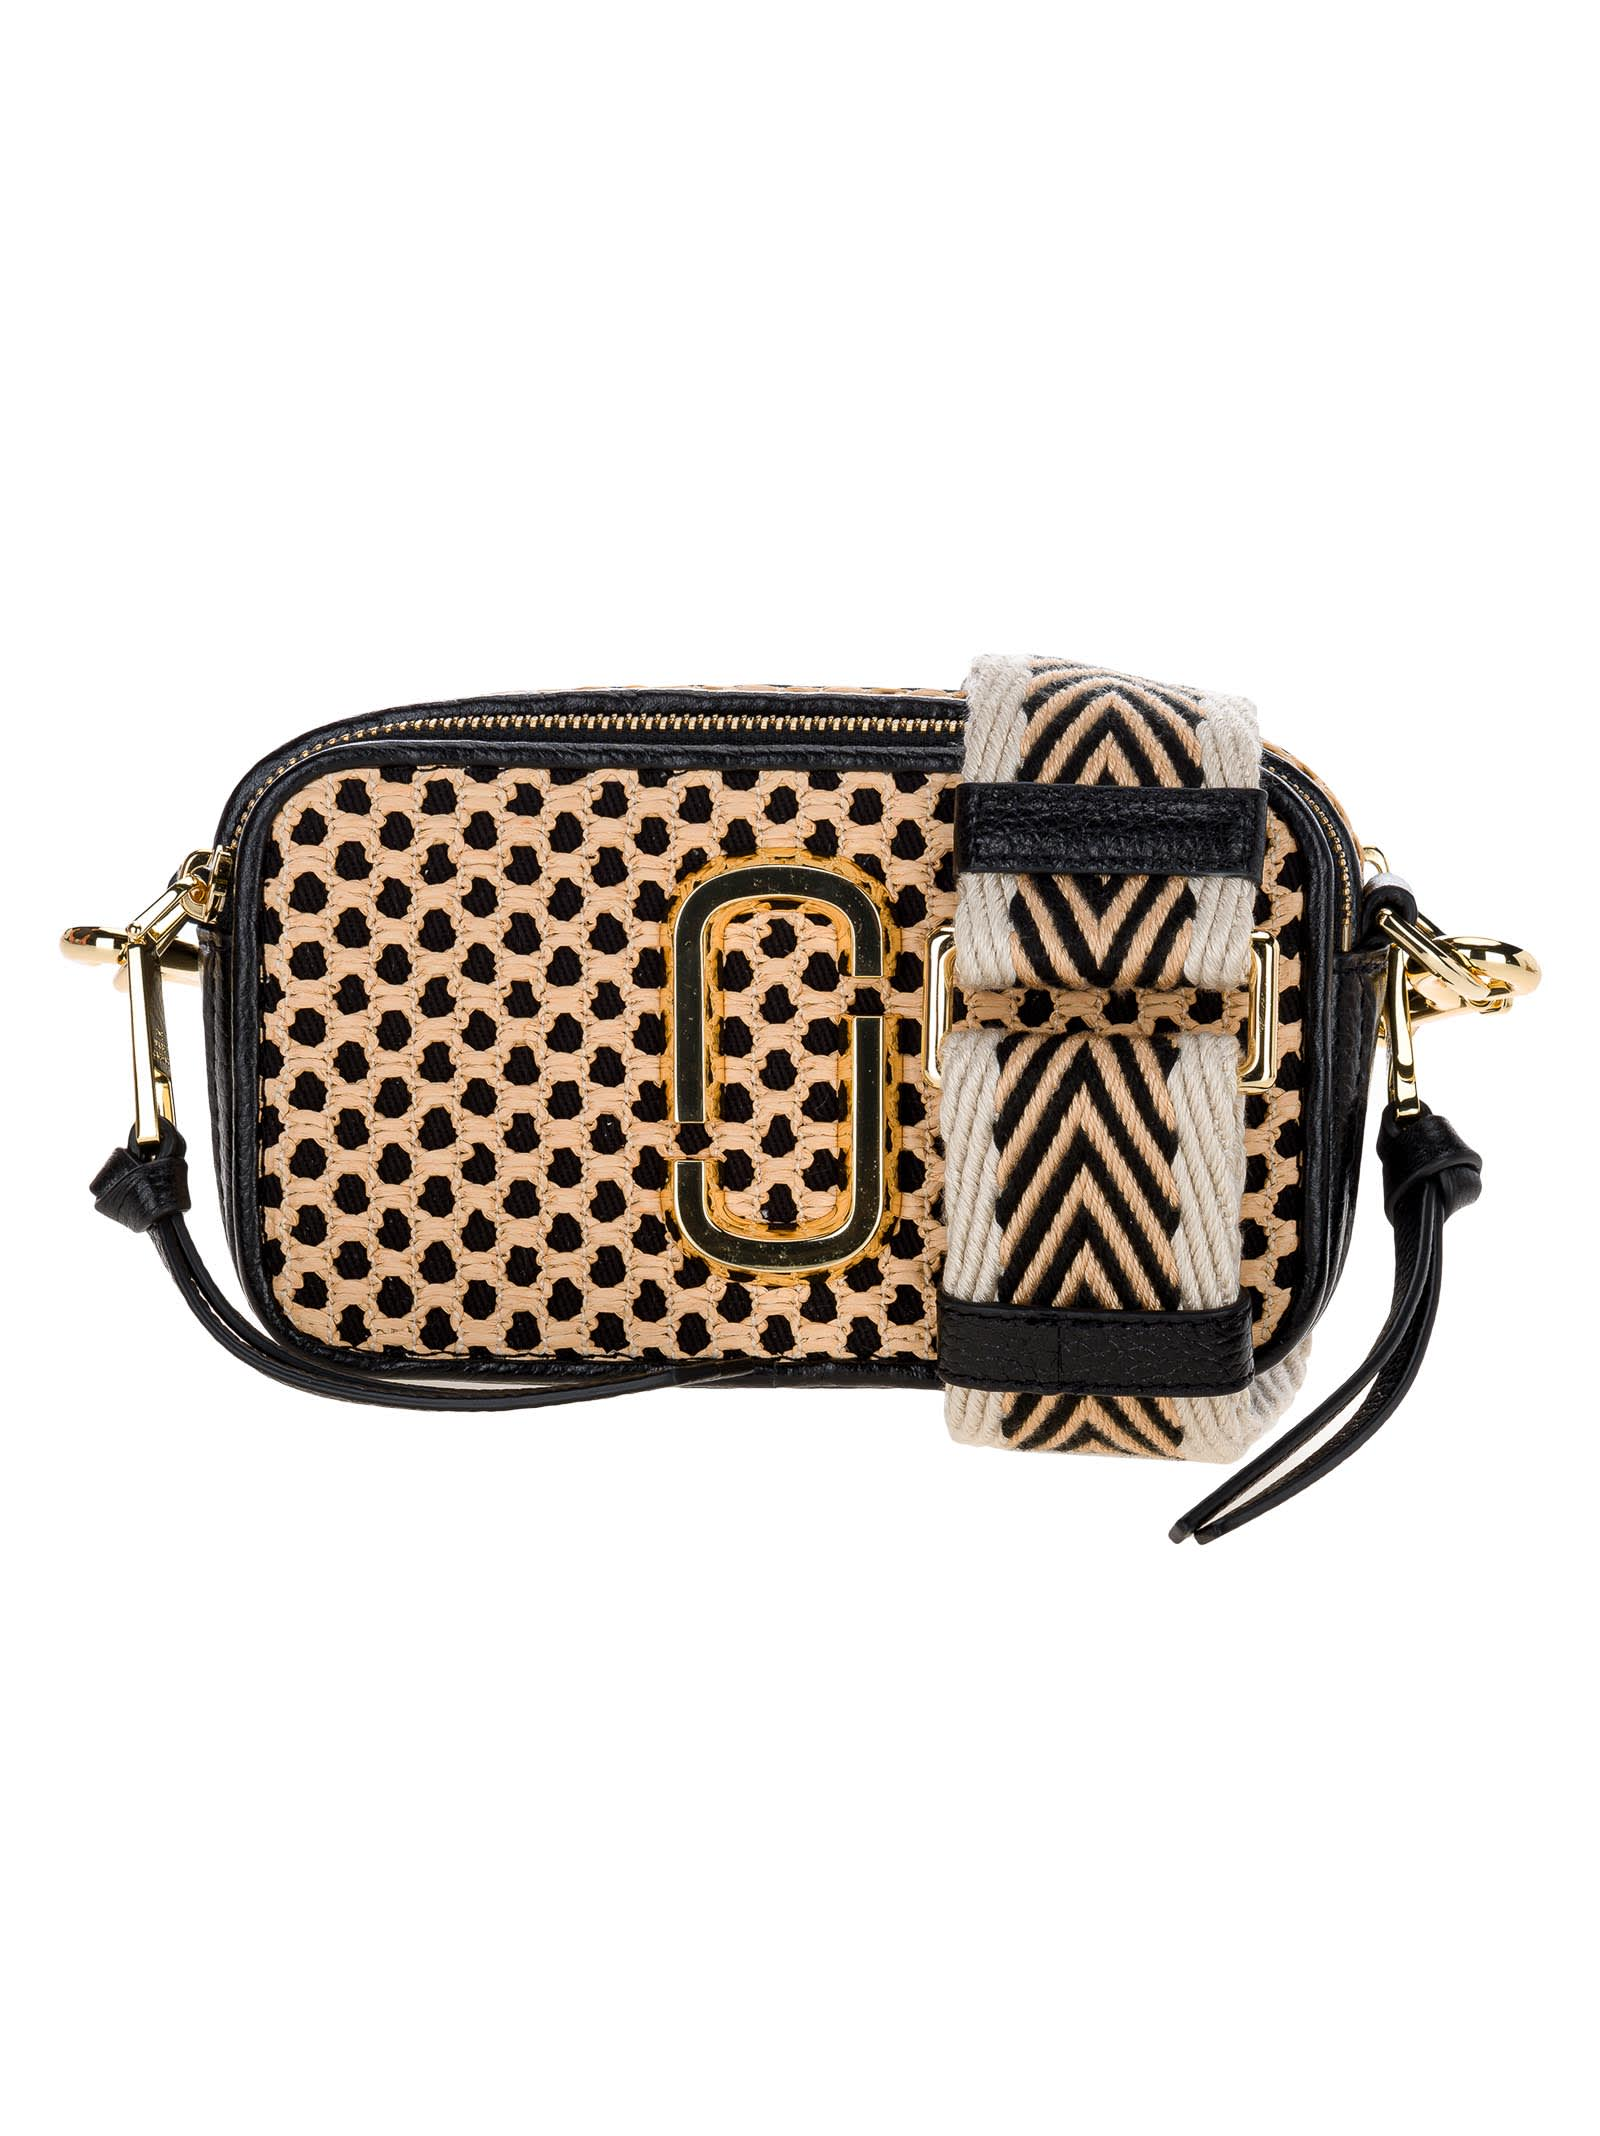 Marc Jacobs The Snapshot Cane